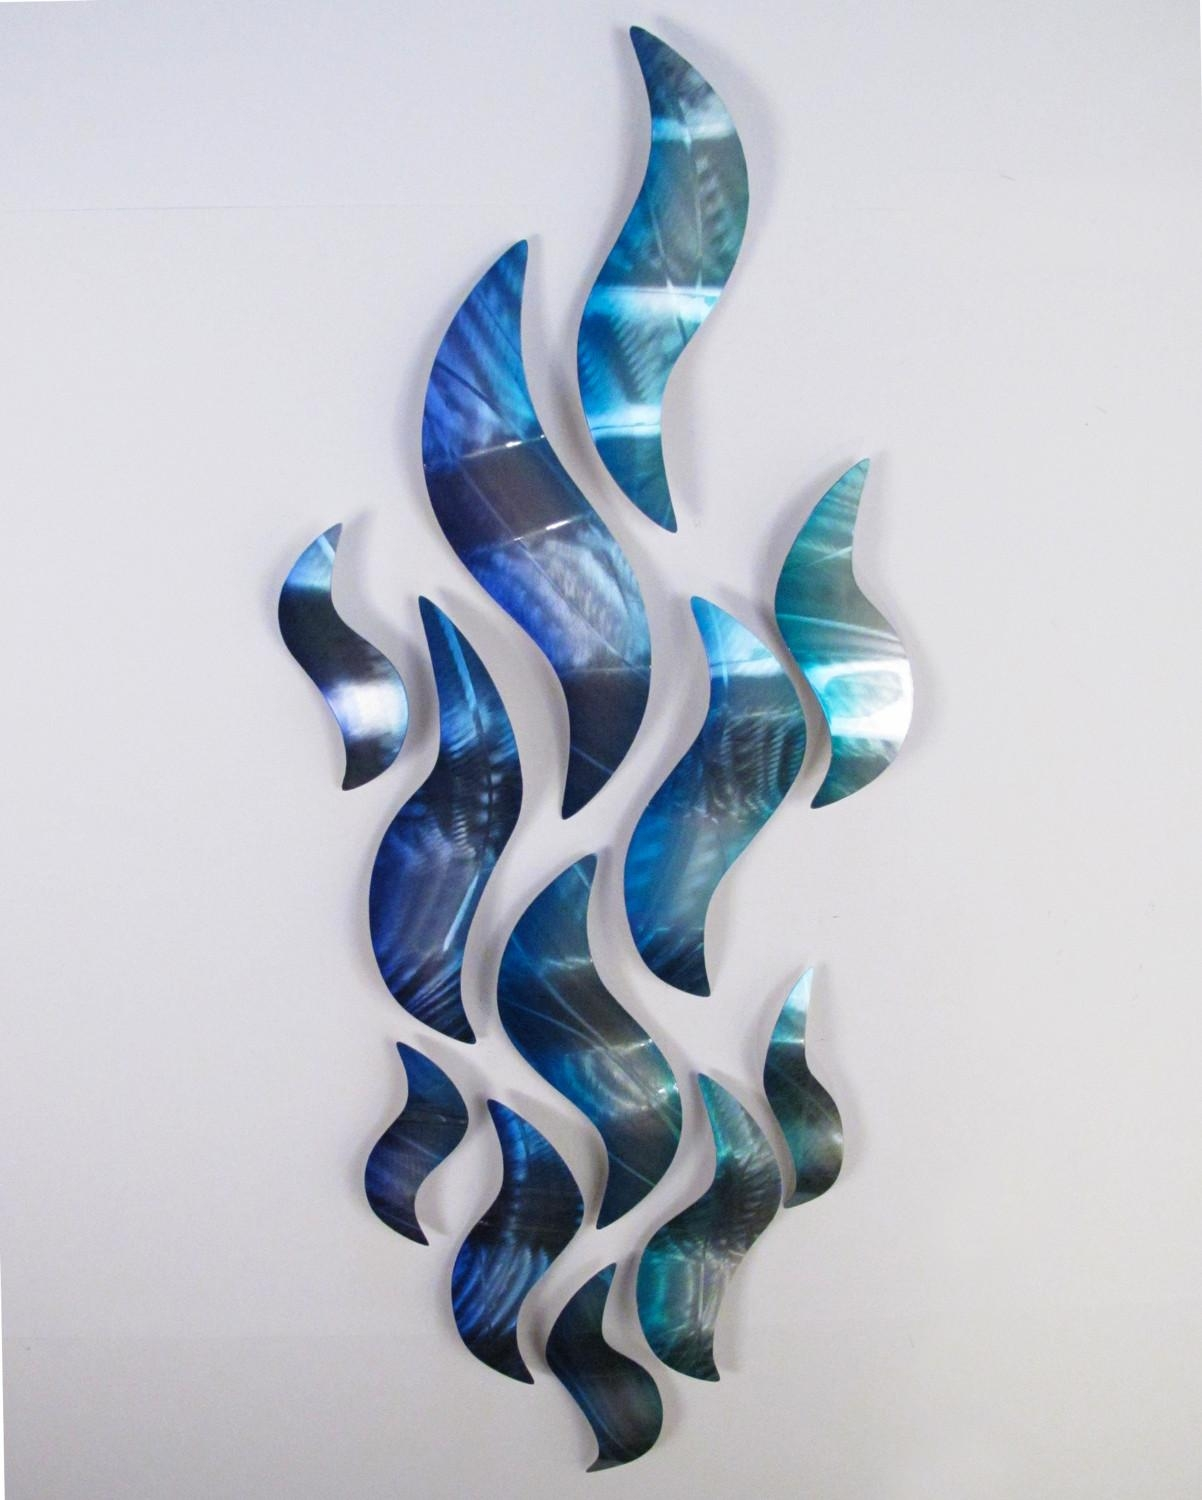 Excellent Metal Fish Wall Art New Zealand Fish Metal Wall Art Throughout Large Metal Wall Art Sculptures (View 2 of 20)